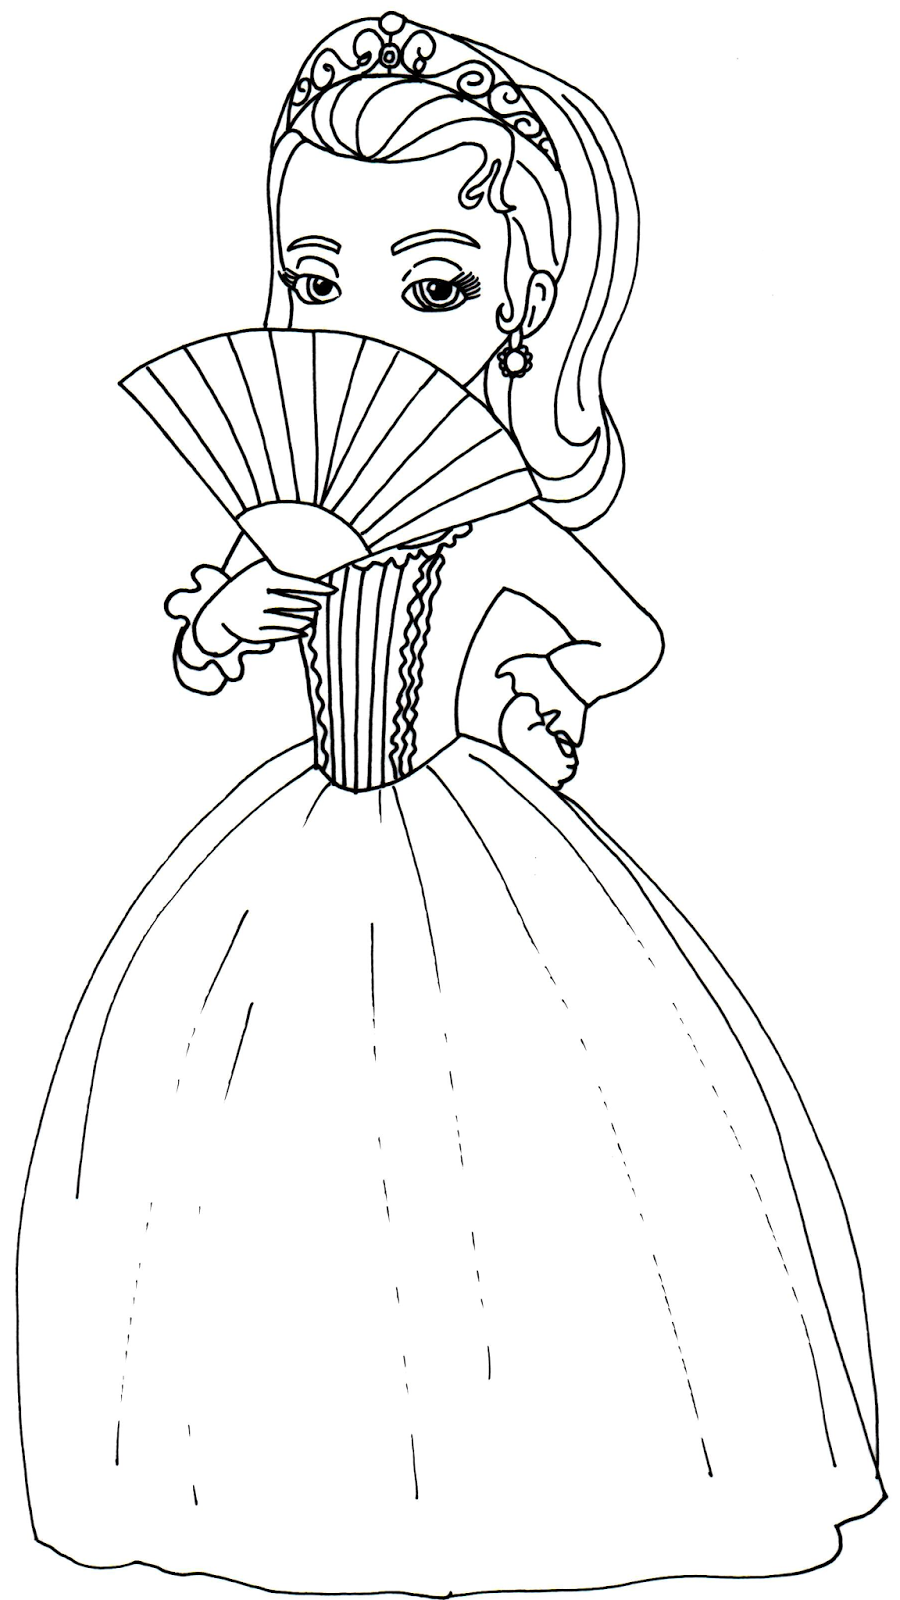 Princess sophia printable coloring pages - Sofia The First Coloring Pages Amber